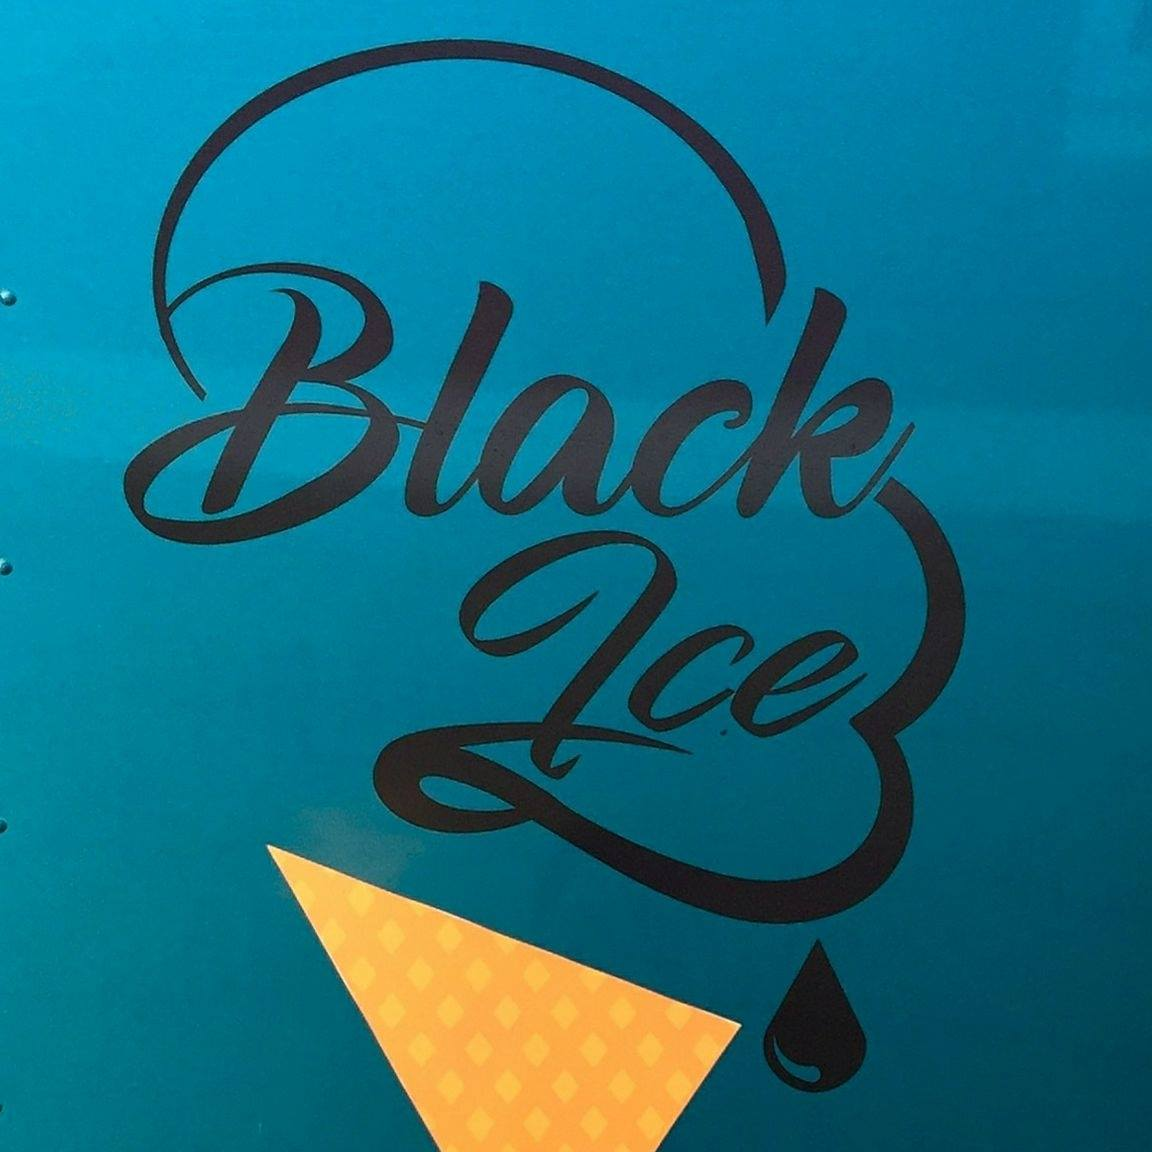 BLACK ICE: Sweet Creams & Treats logo